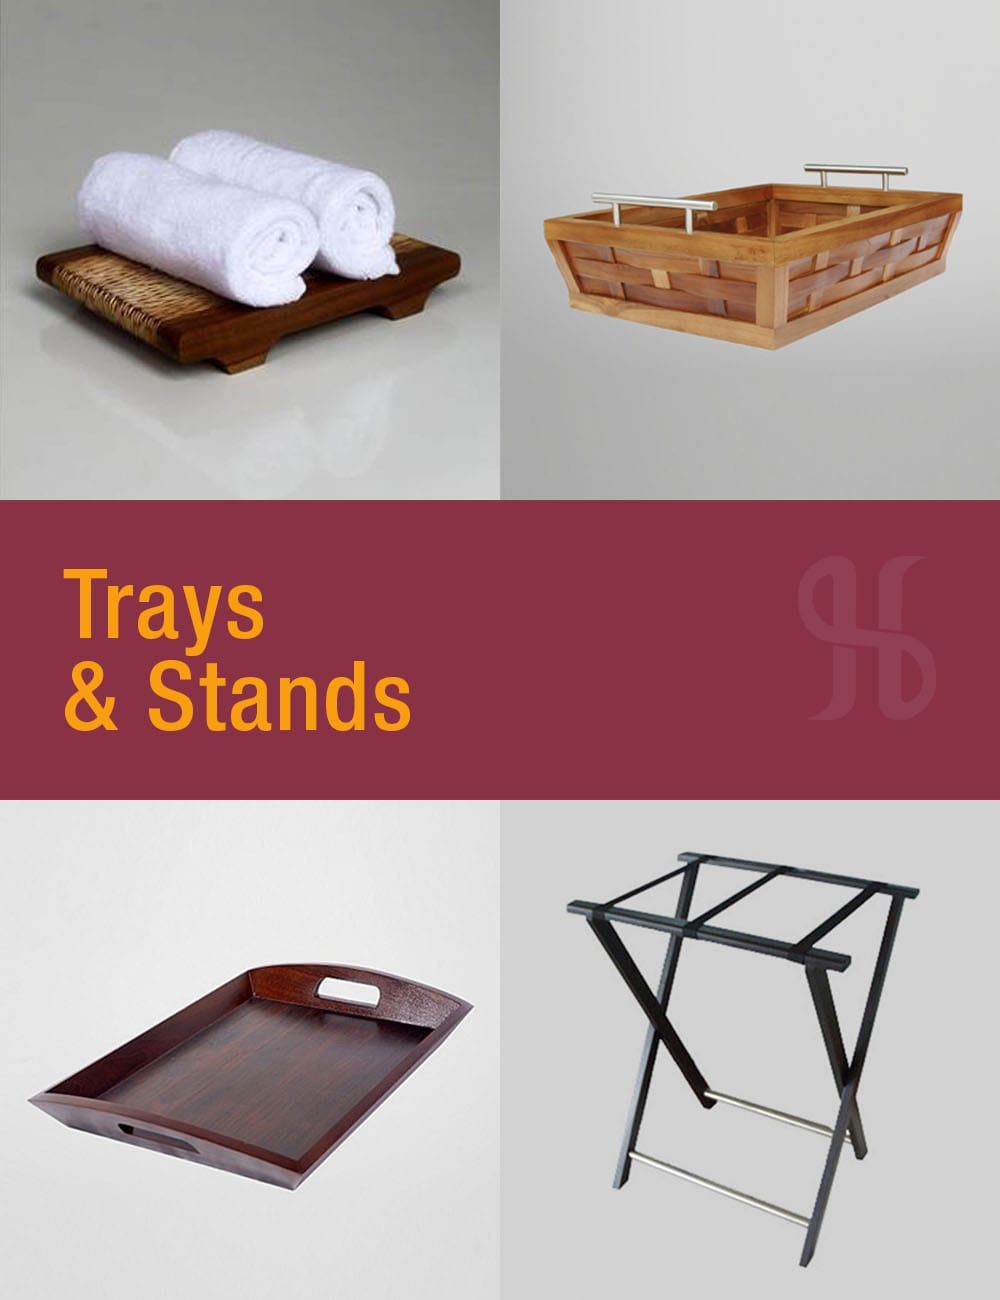 Trays and Stands